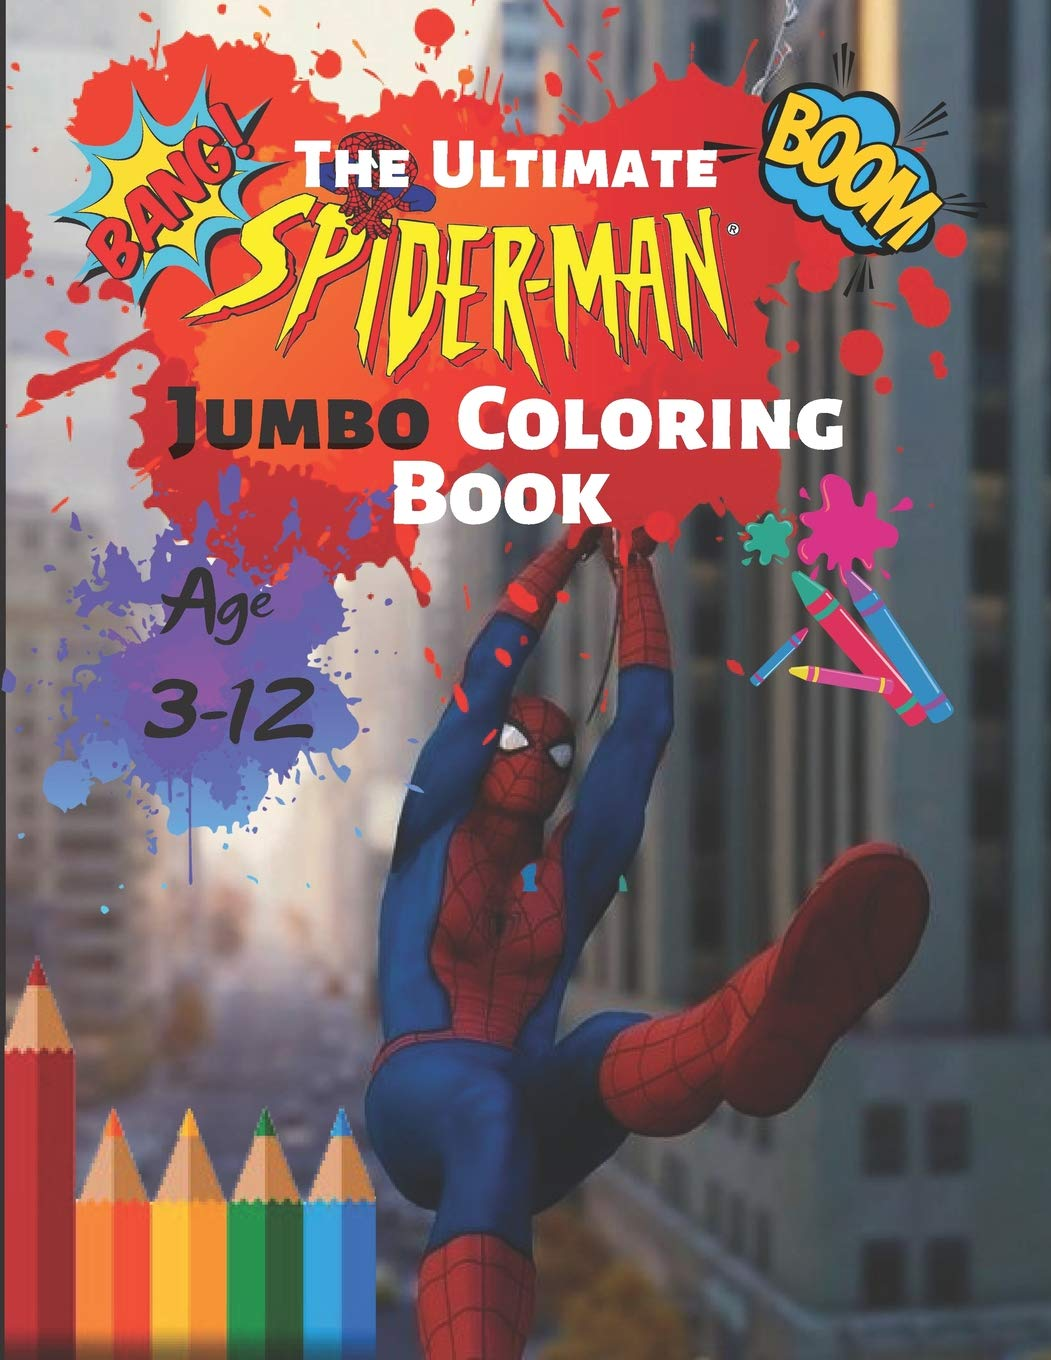 The Ultimate Spider-man Jumbo Coloring Book Age 6-6 Boom